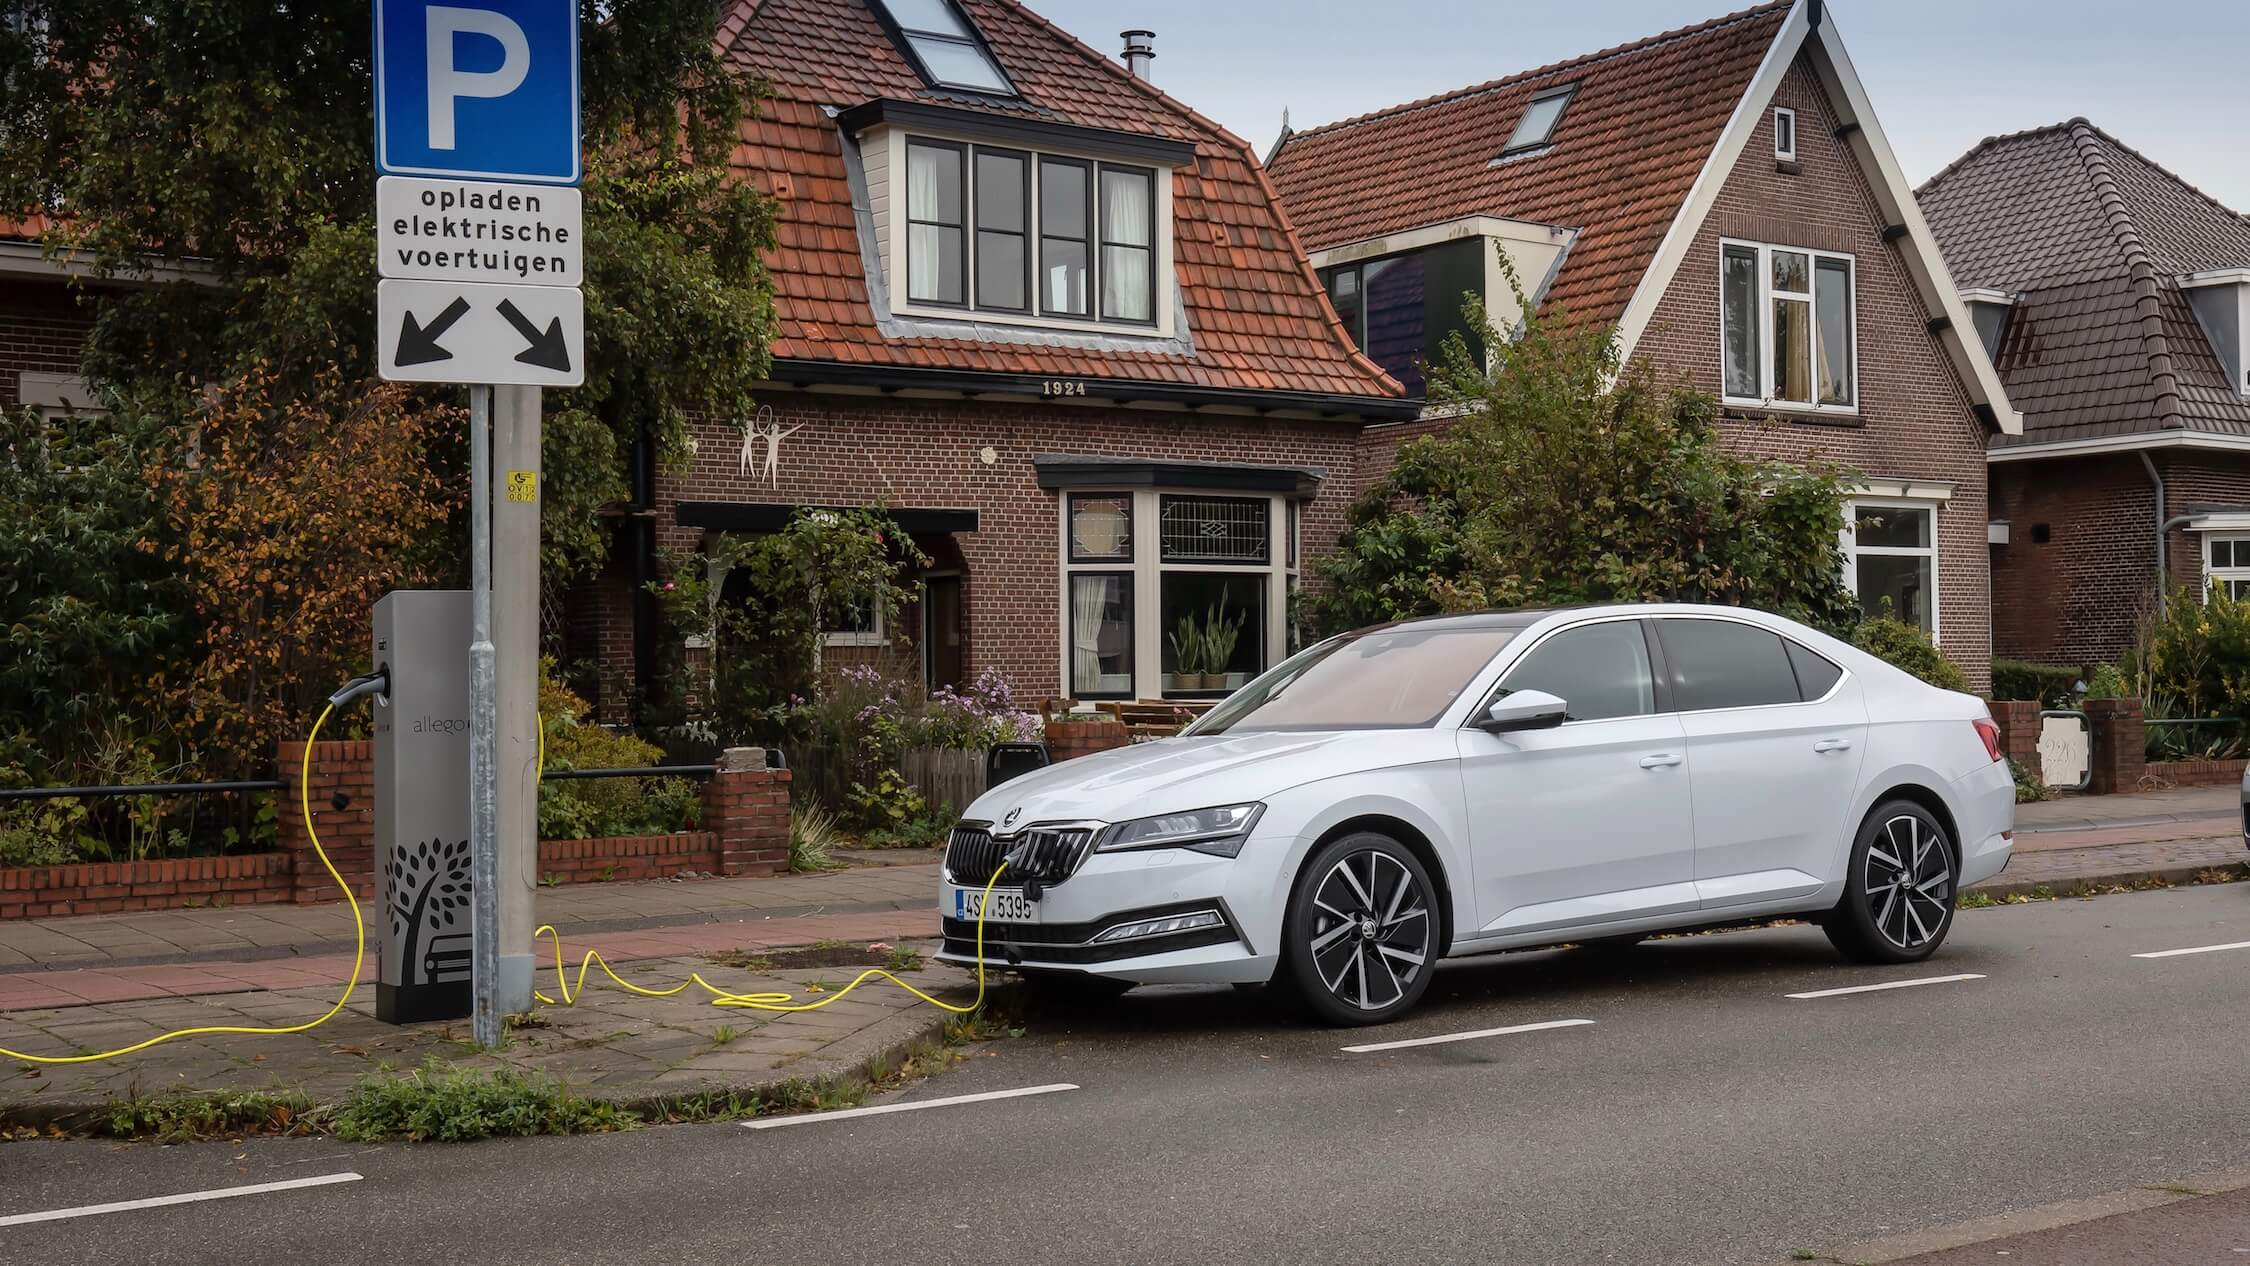 plug-in hybride Skoda Superb met laadkabel